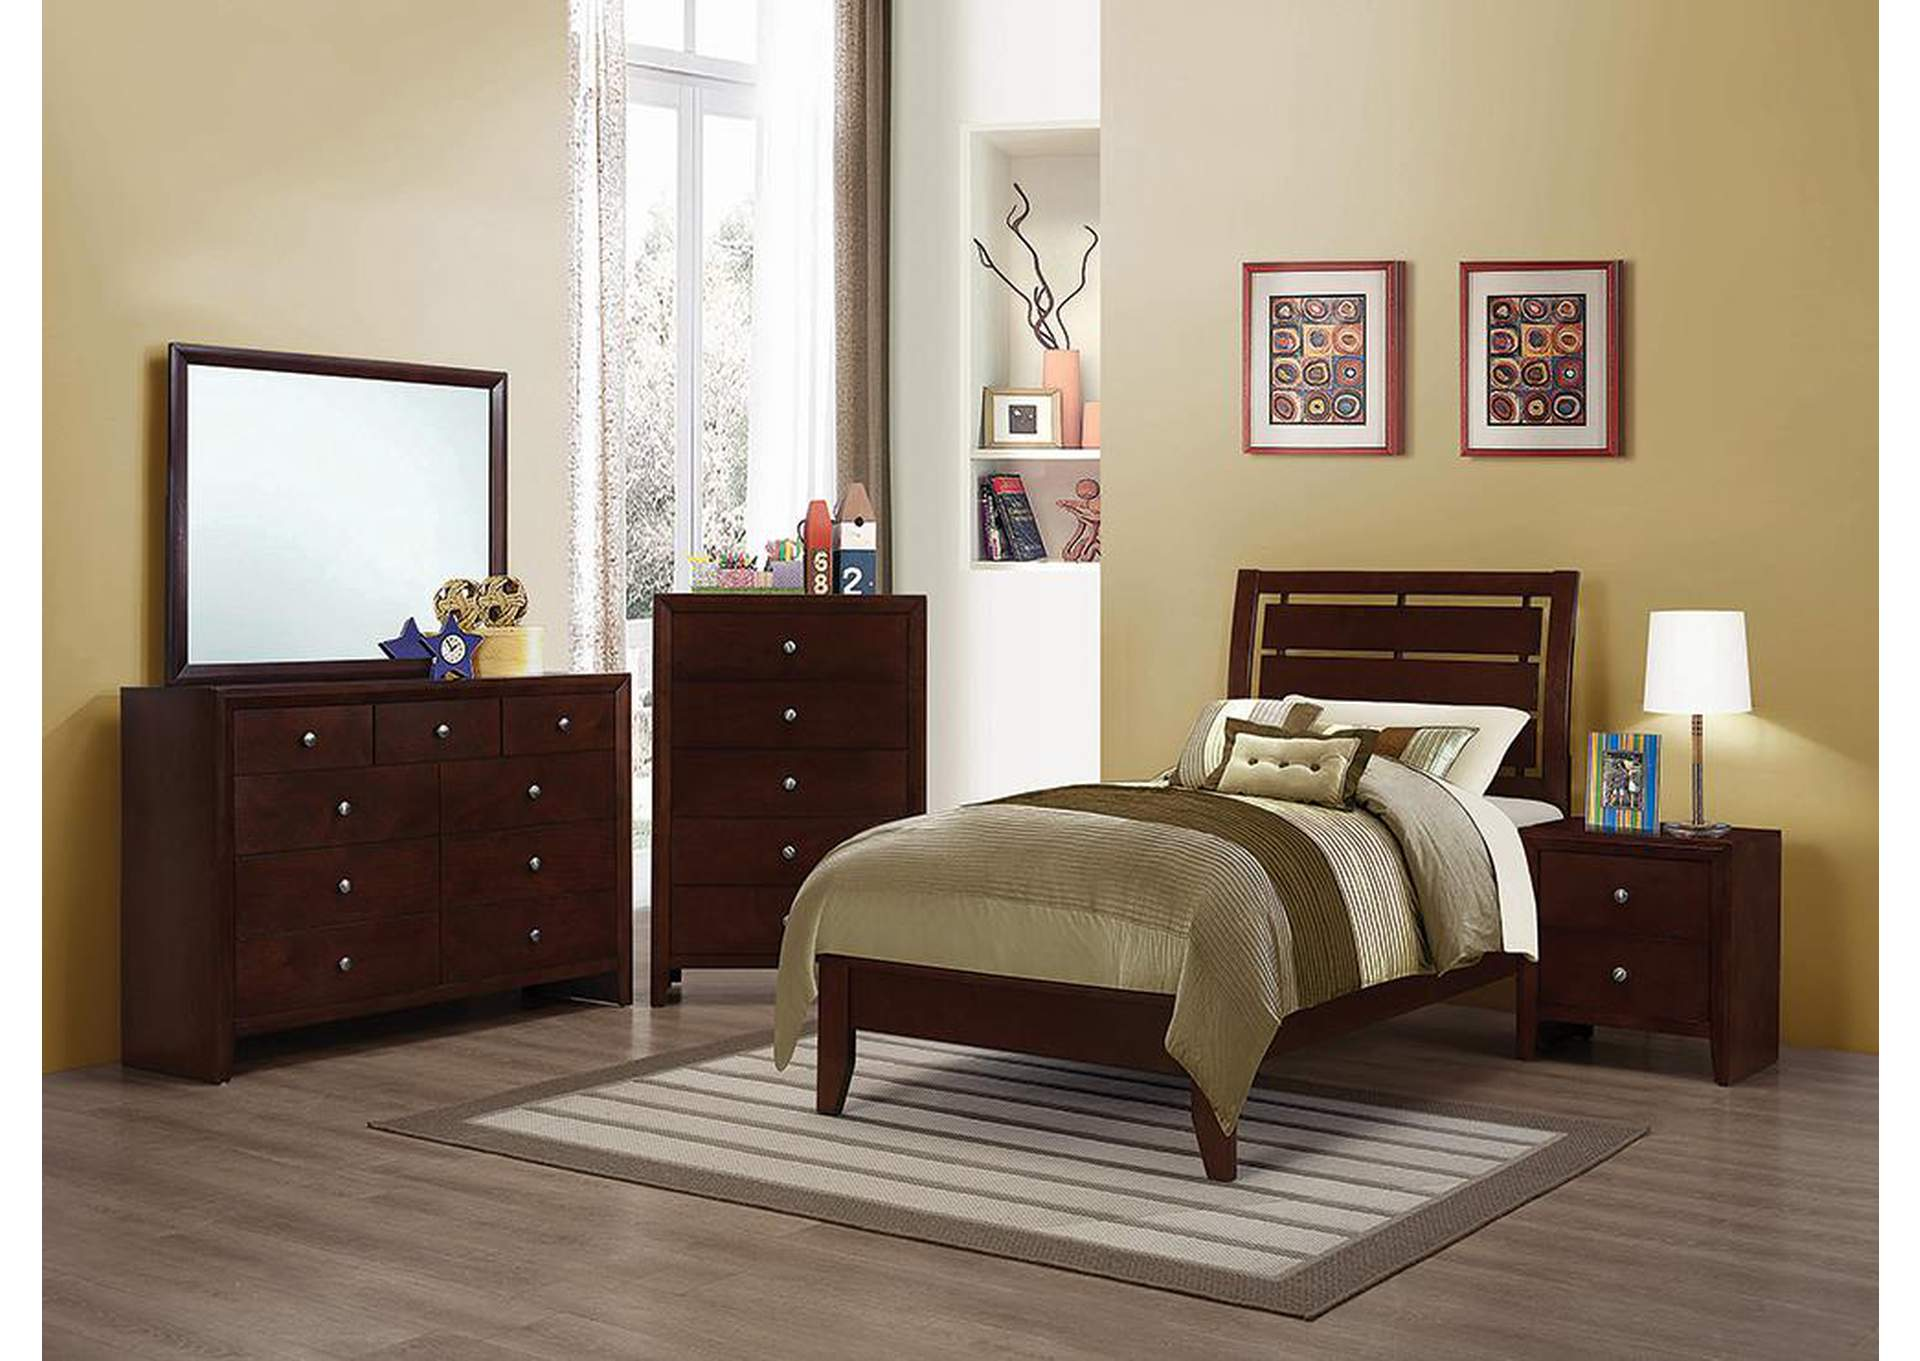 Serenity Merlot Full Bed,Coaster Furniture